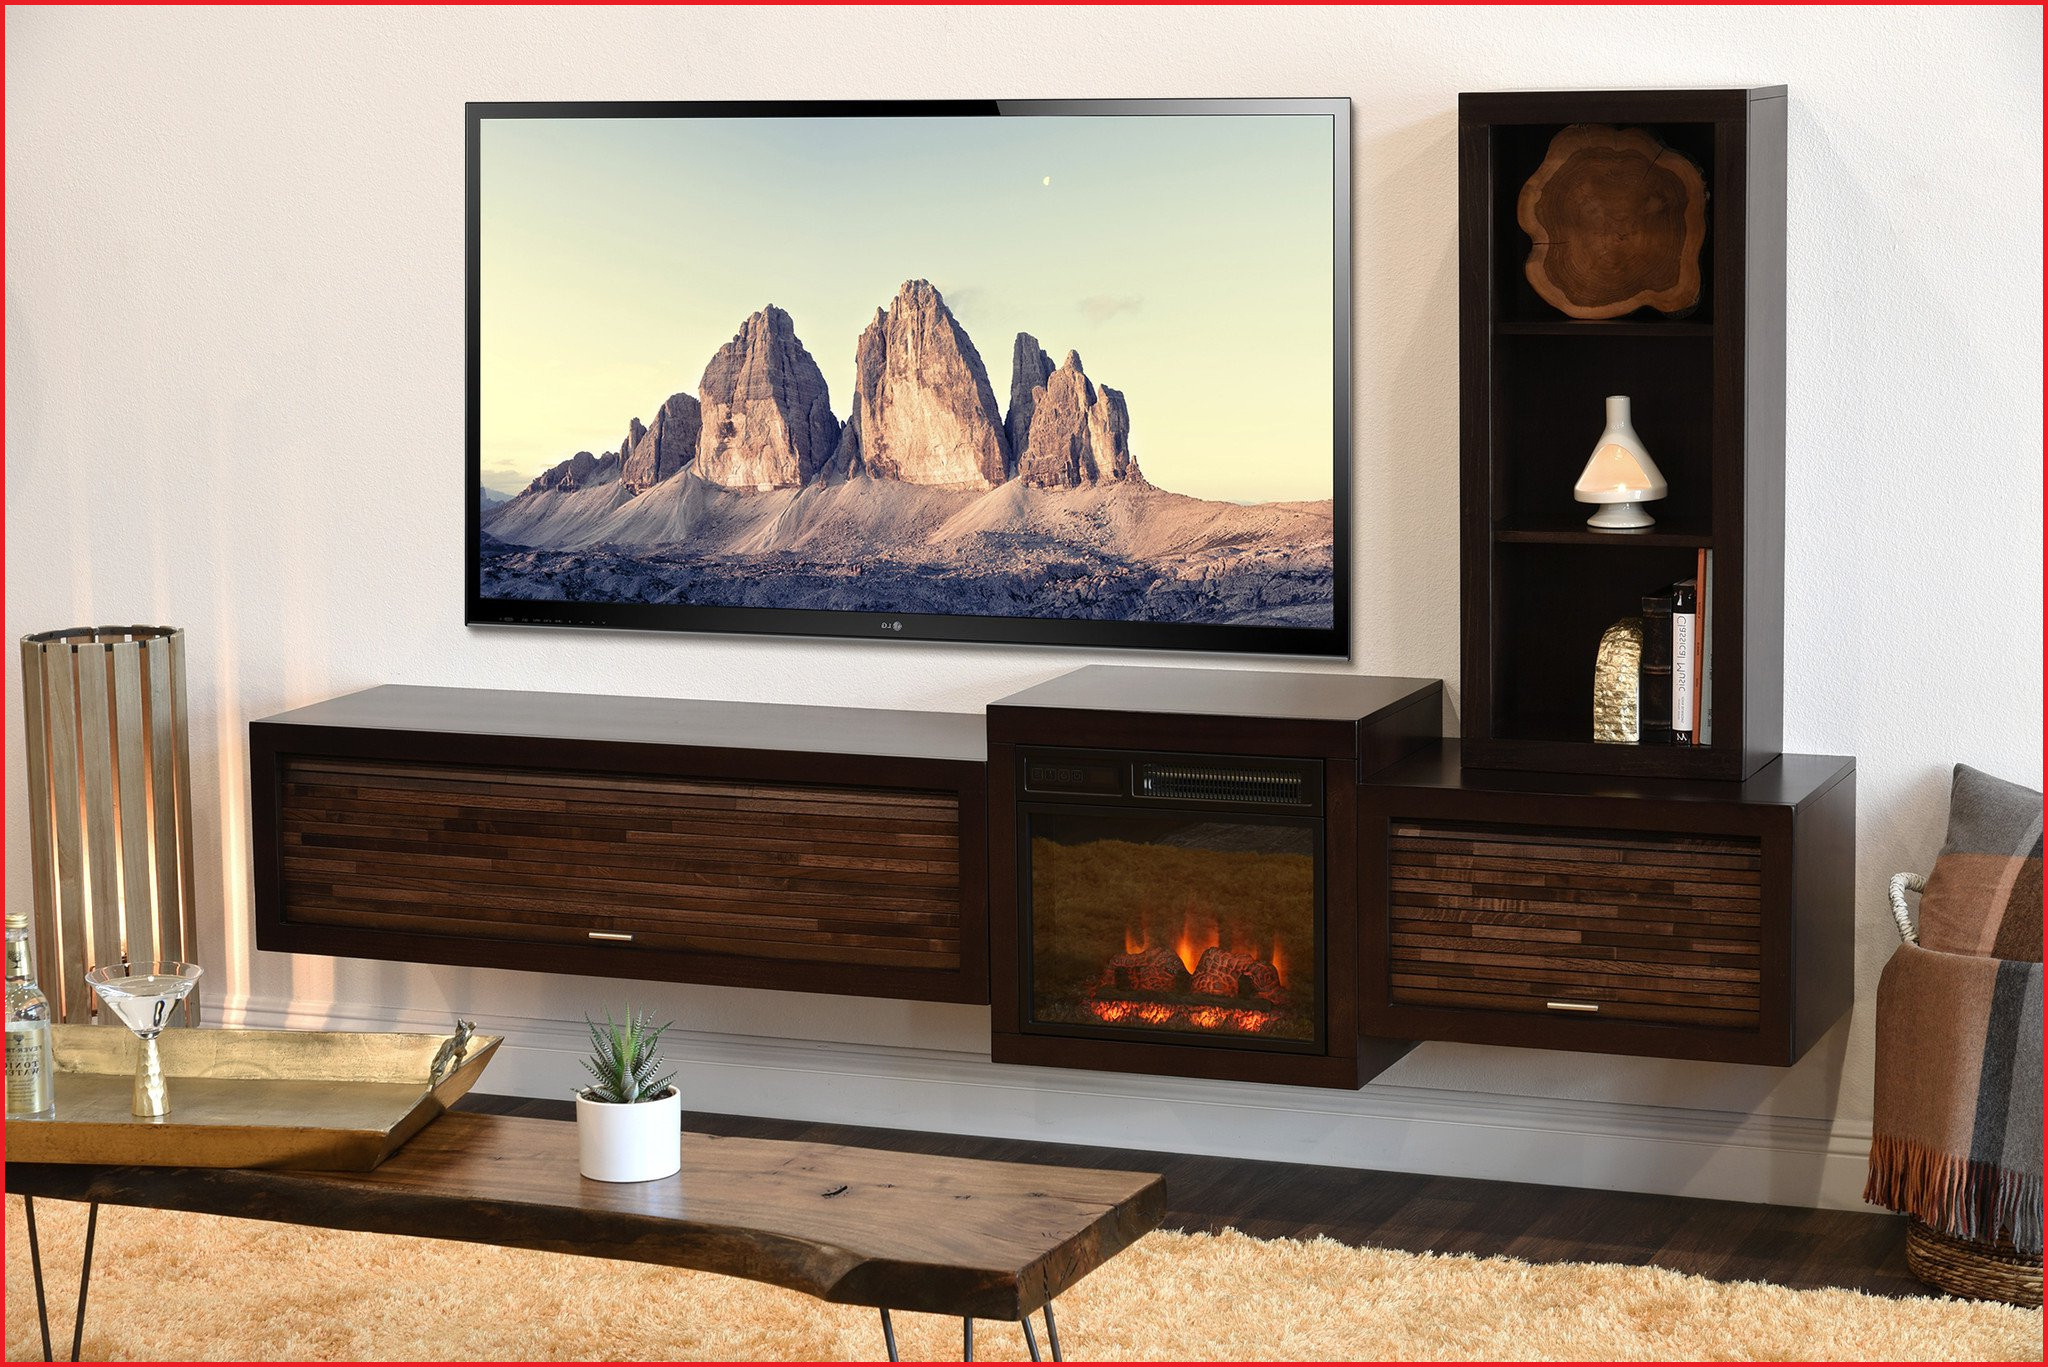 Lovely Long Tv Stand Image Of Tv Stands Decoration 66652 – Tv Stands For Current Long Tv Stands (Gallery 7 of 20)